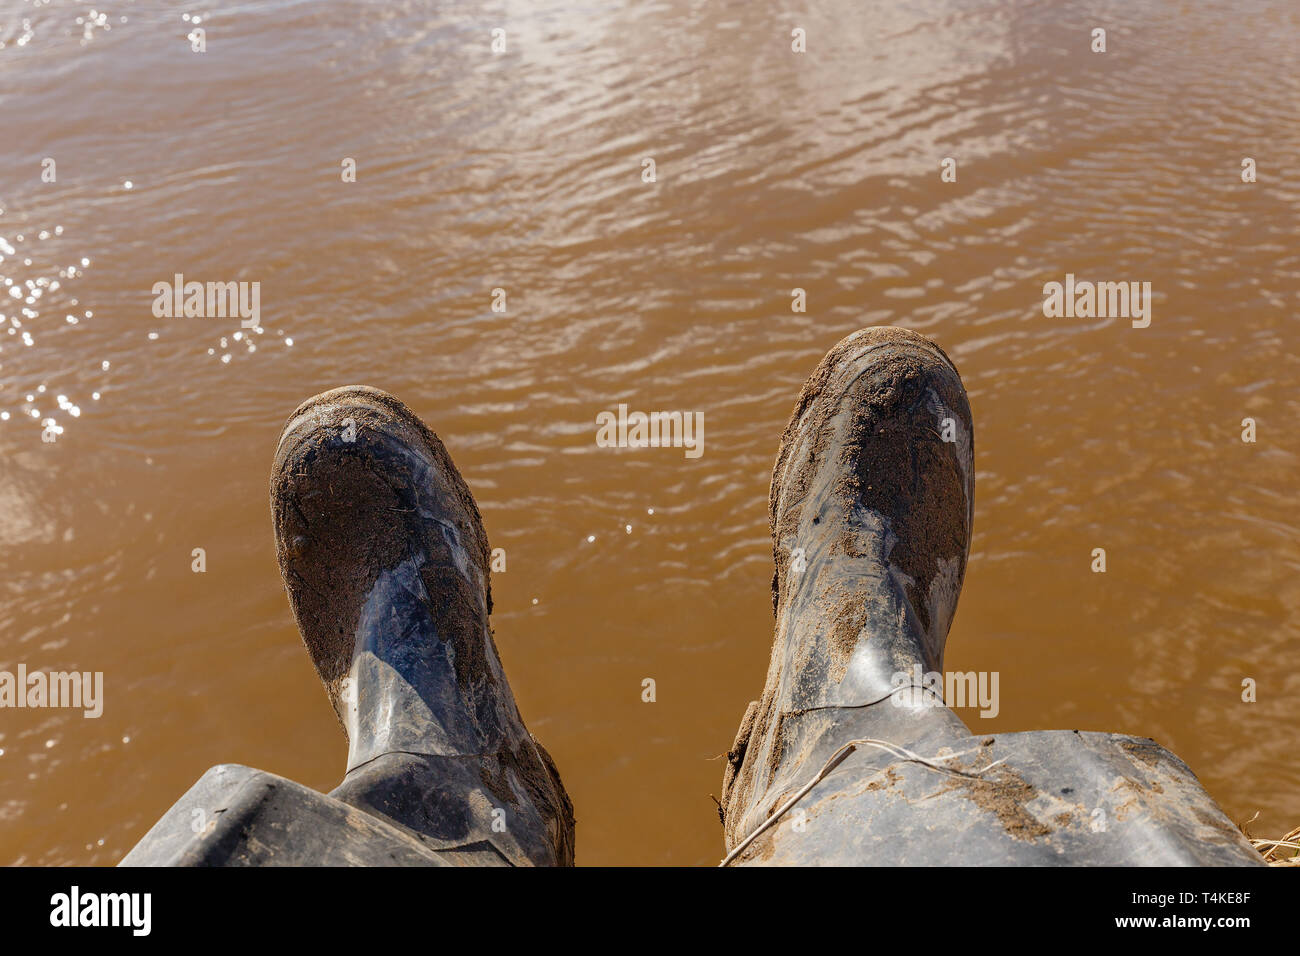 legs of a fisherman sitting in dirty rubber boots on the bank of the river with dirty water in the background - Stock Image